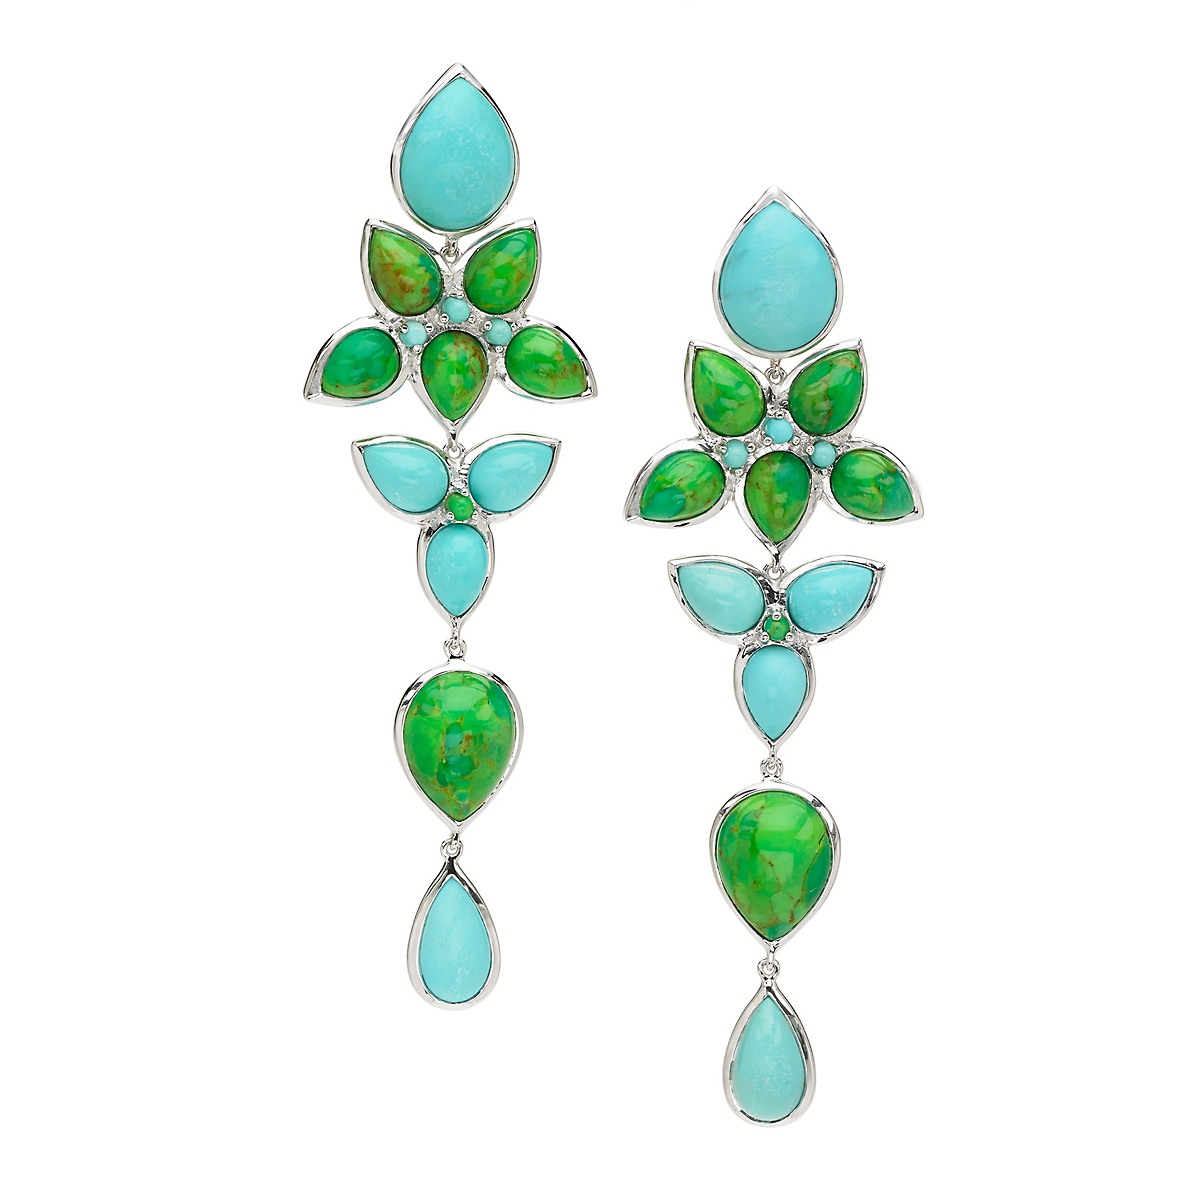 Elizabeth Showers Green & Blue Turquoise Long Mariposa Teardrop Earrings